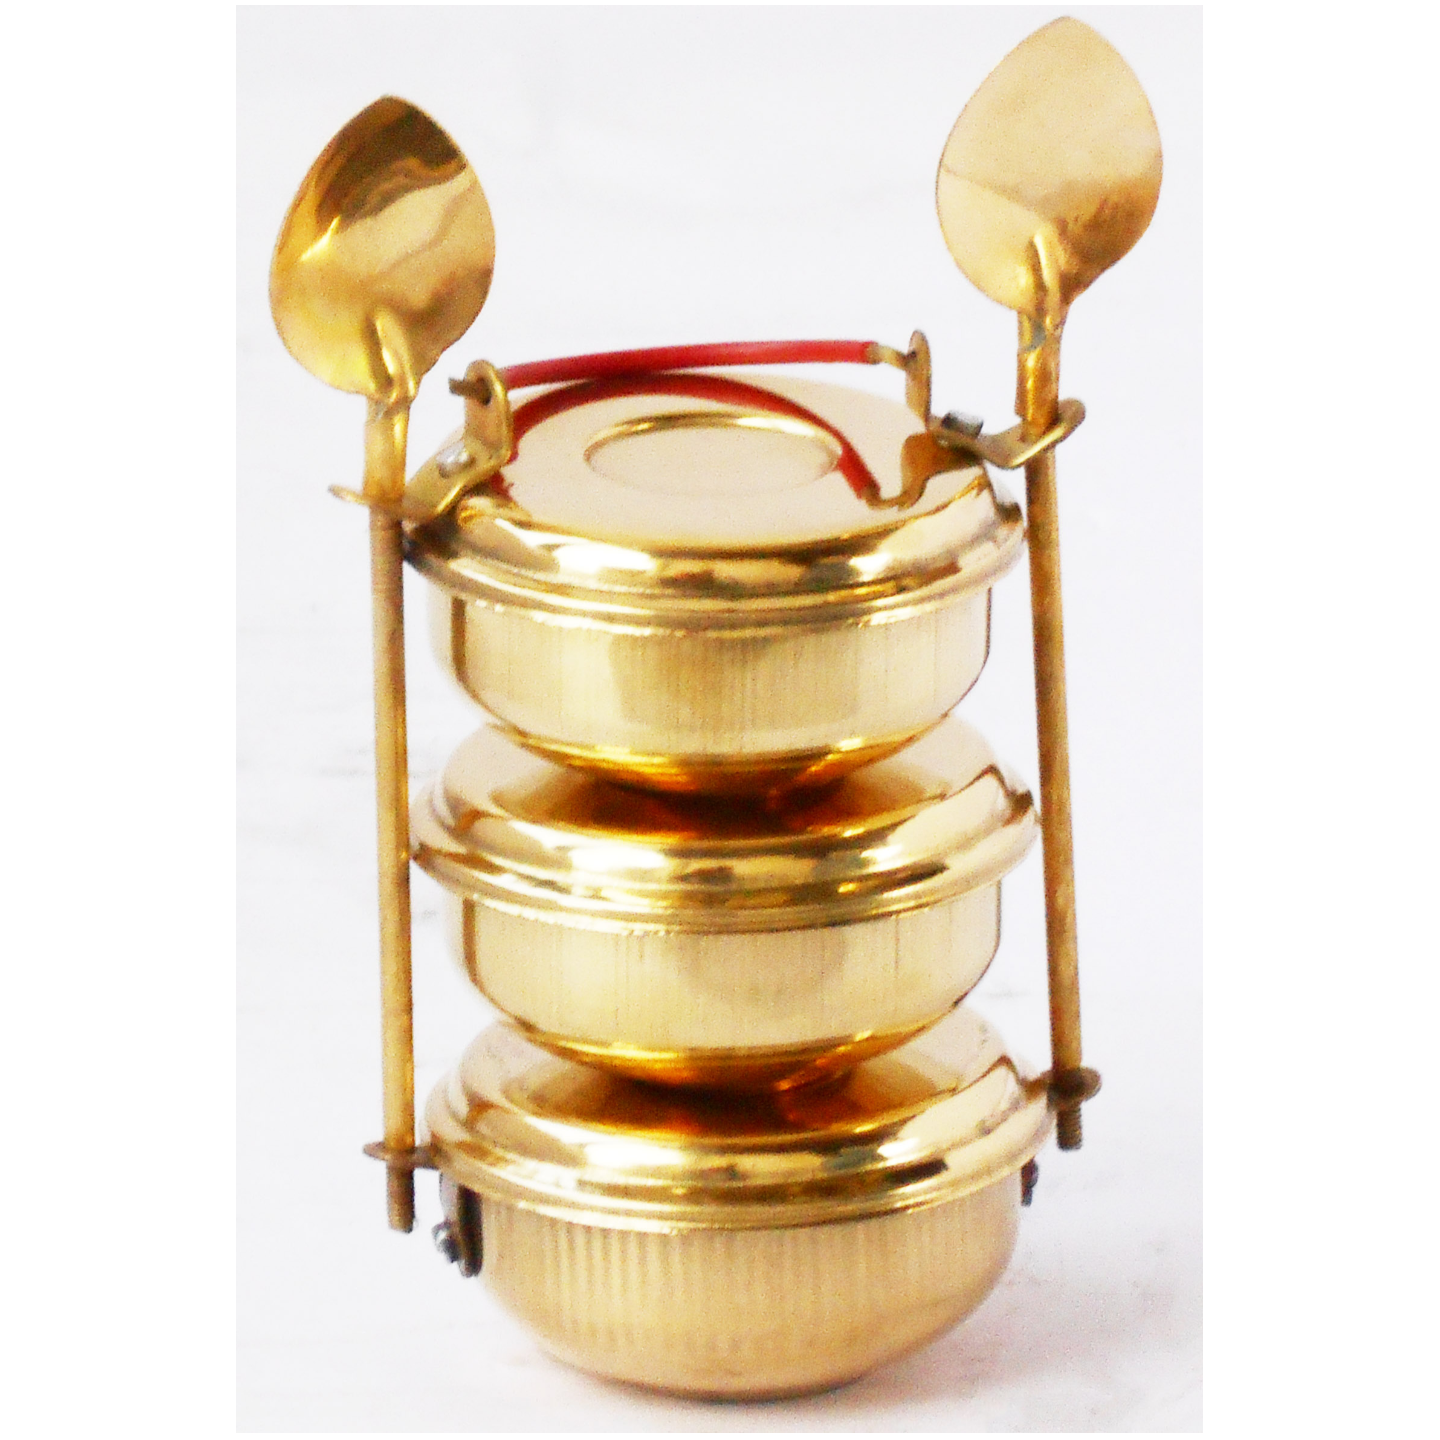 Brass Lunch Box Small Miniature Toy For Children Playing - 3*3*5.5 Inch (Z335 D)